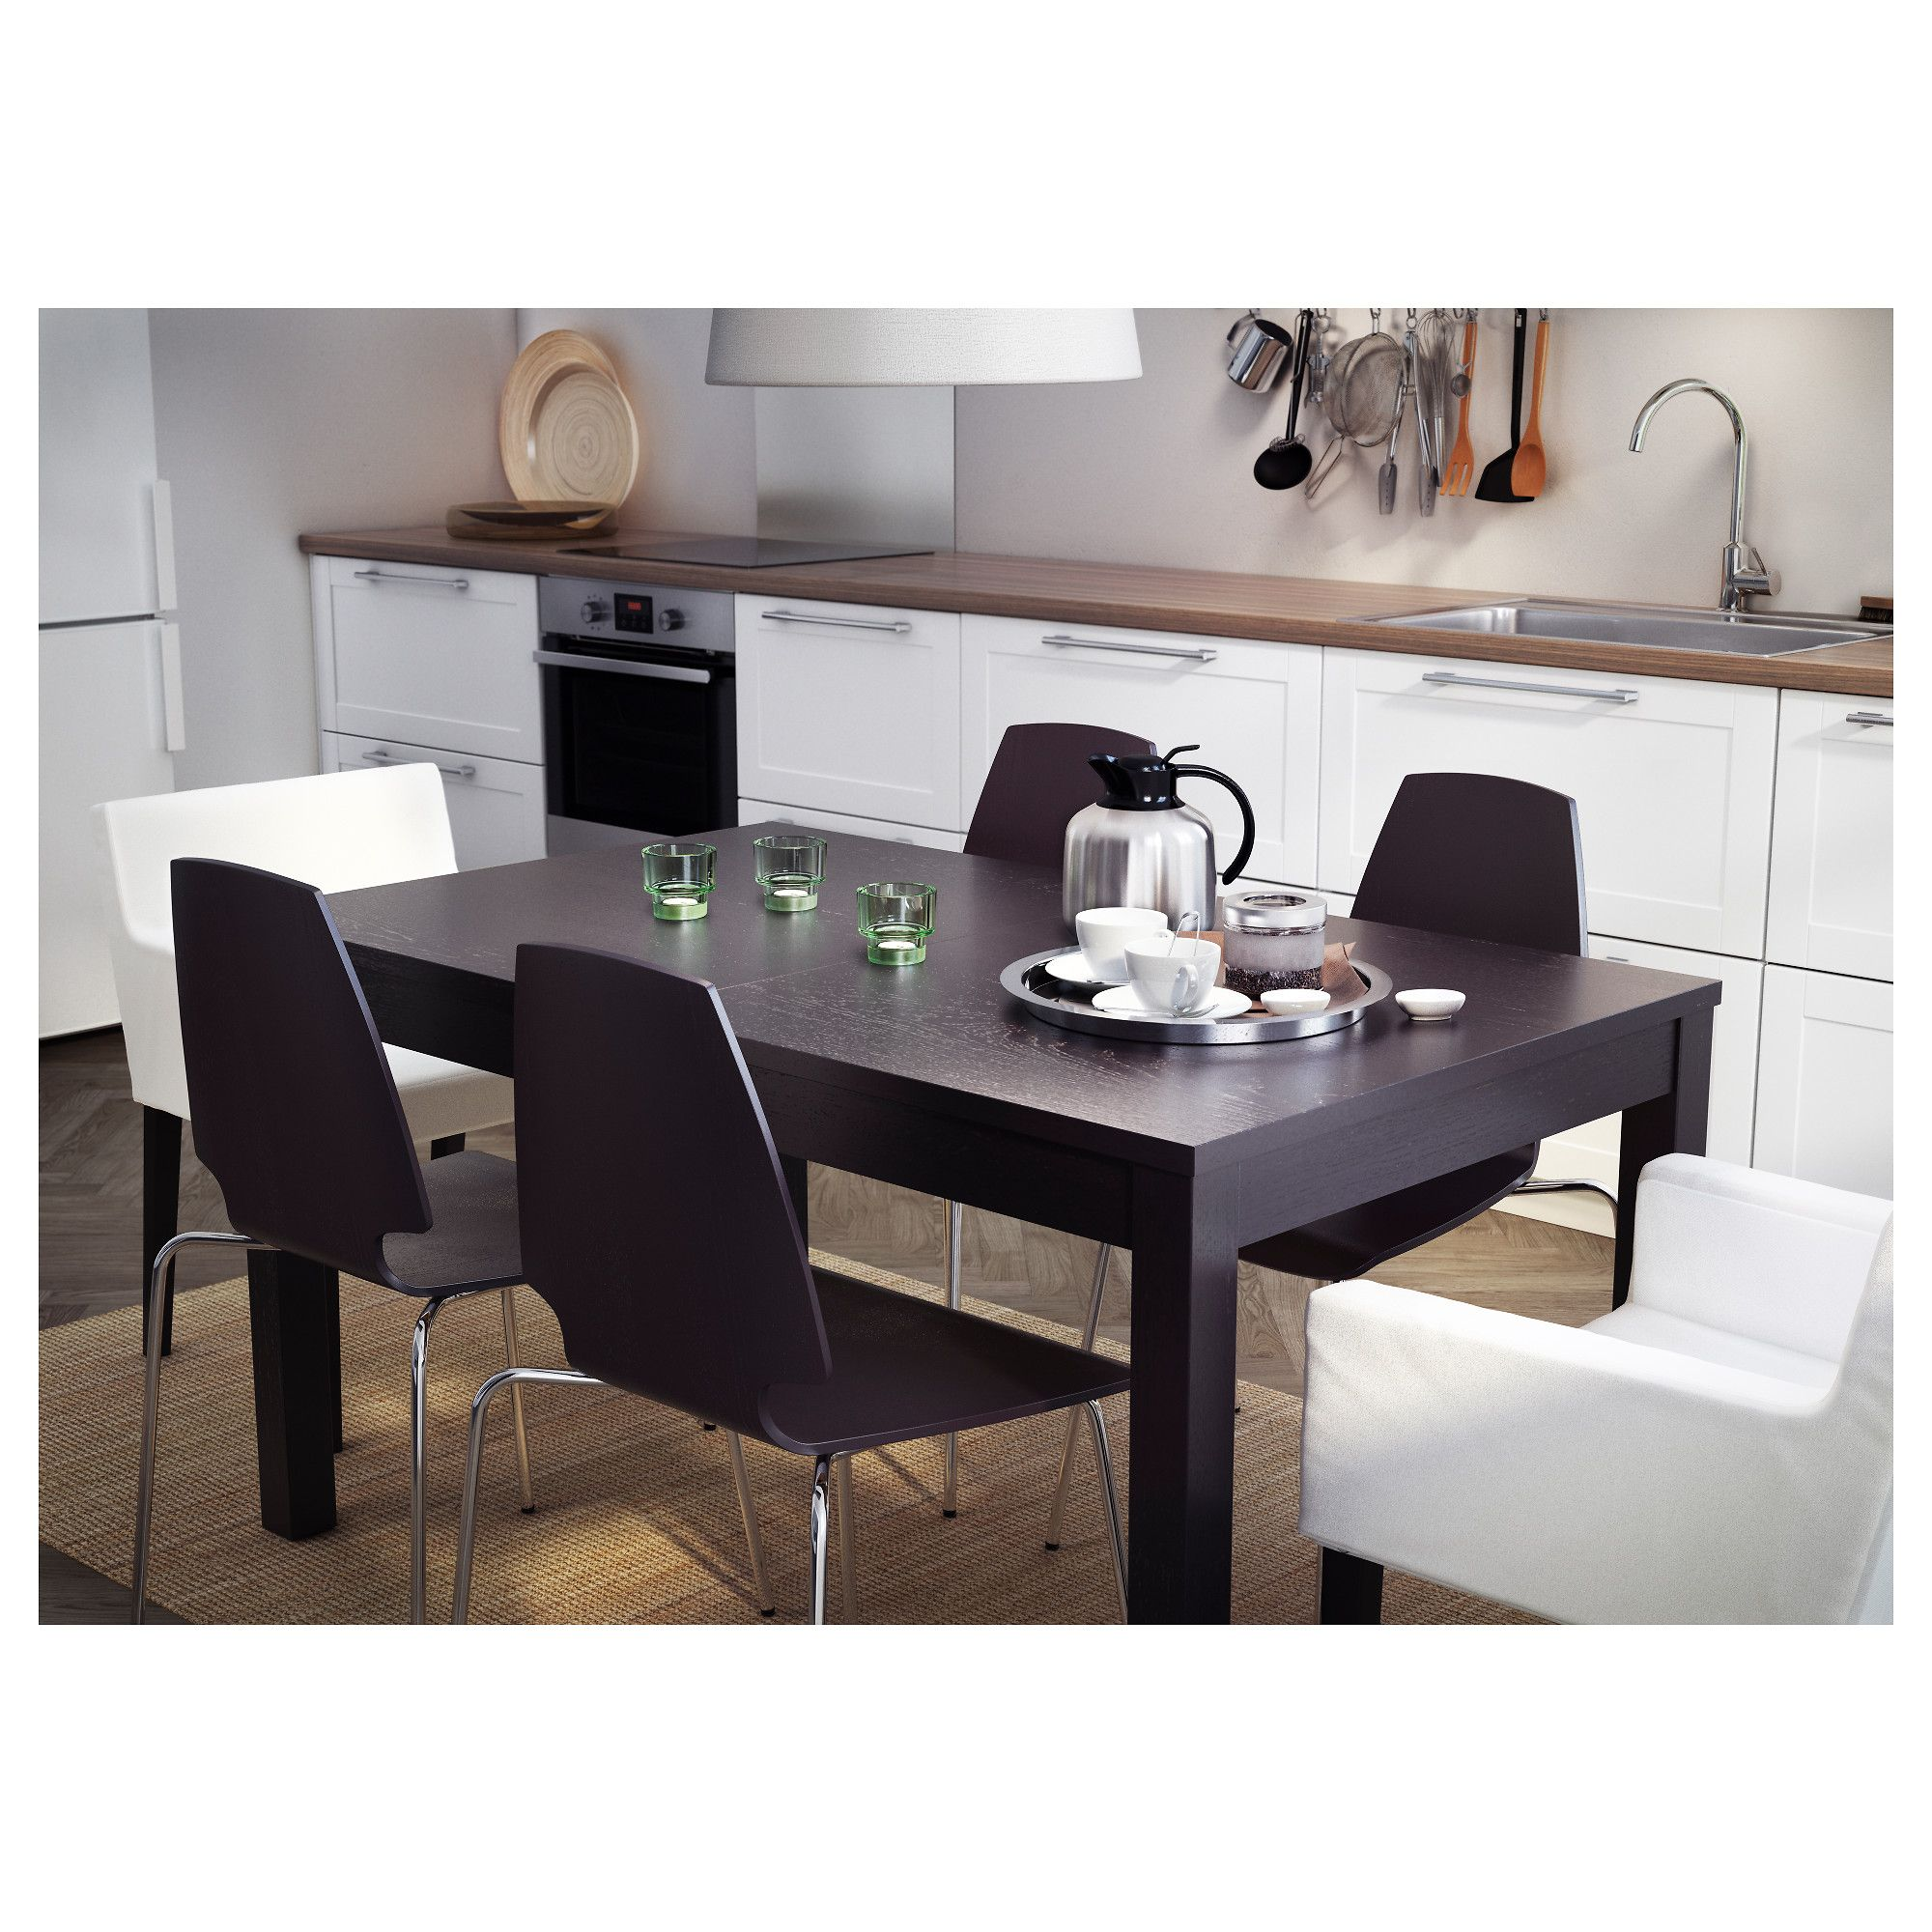 TableTable Furniture FurnishingsProducts Dining Home And 7b6fyg